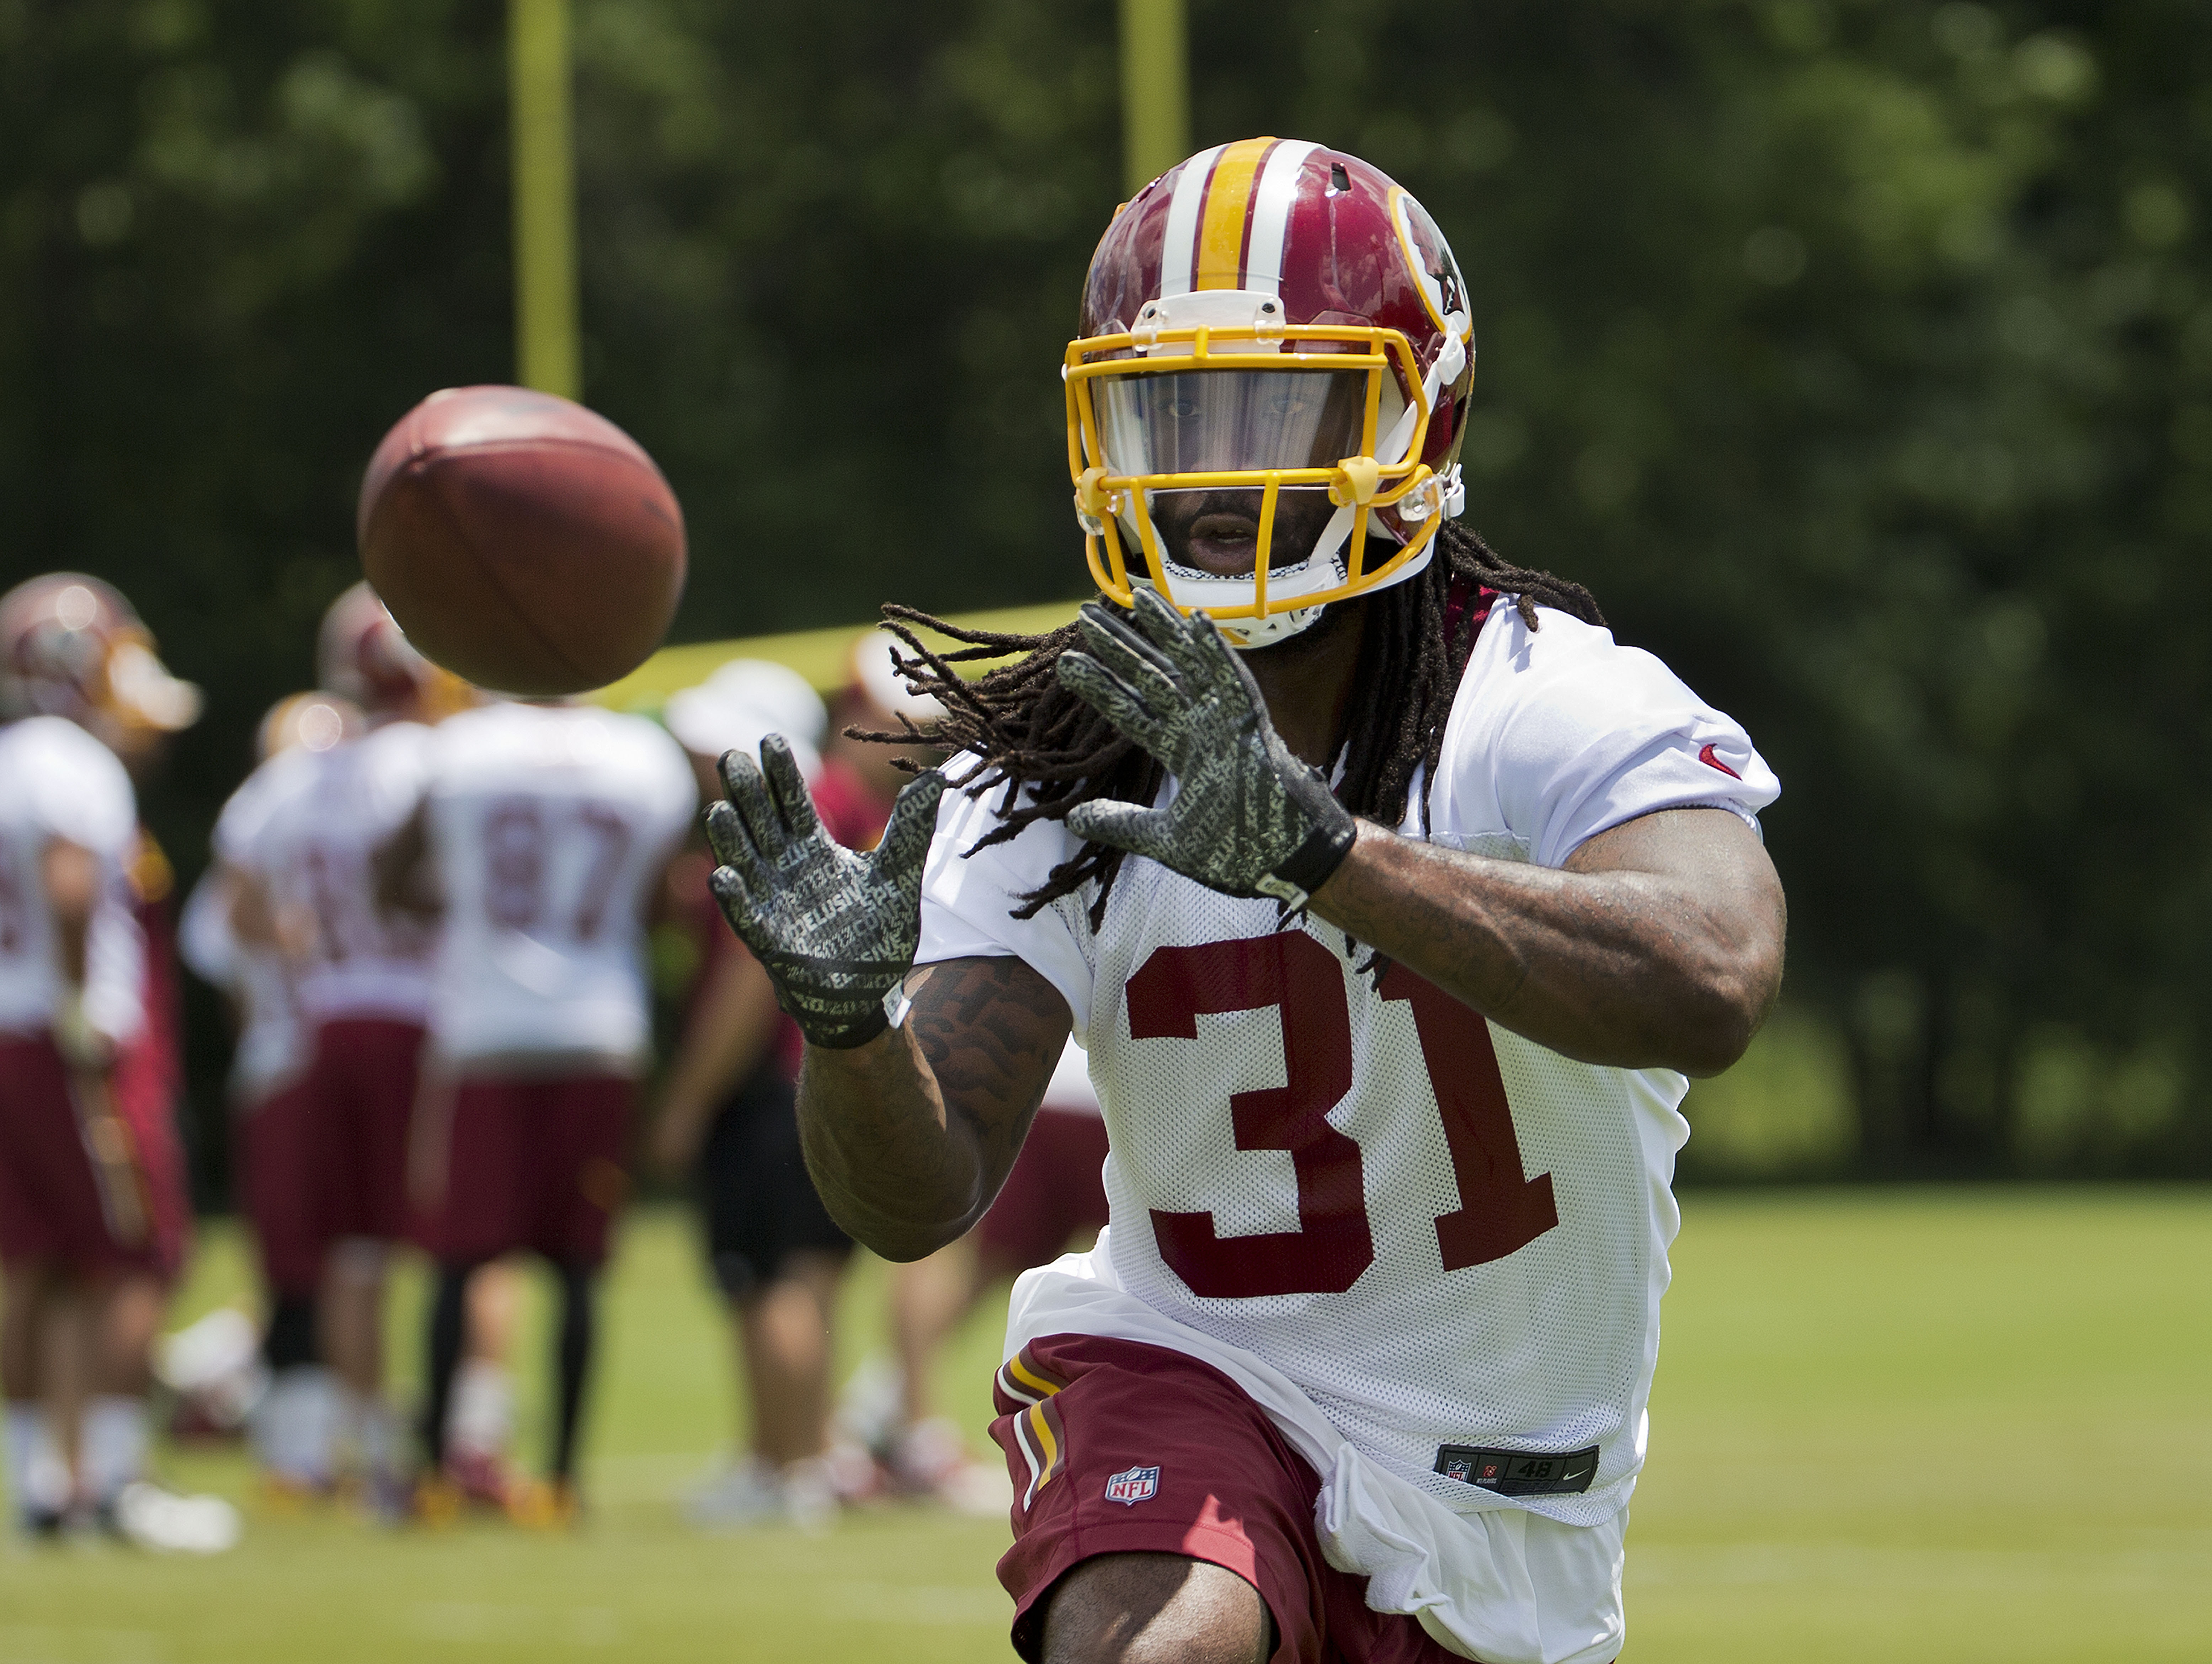 The Redskins open mandatory minicamp